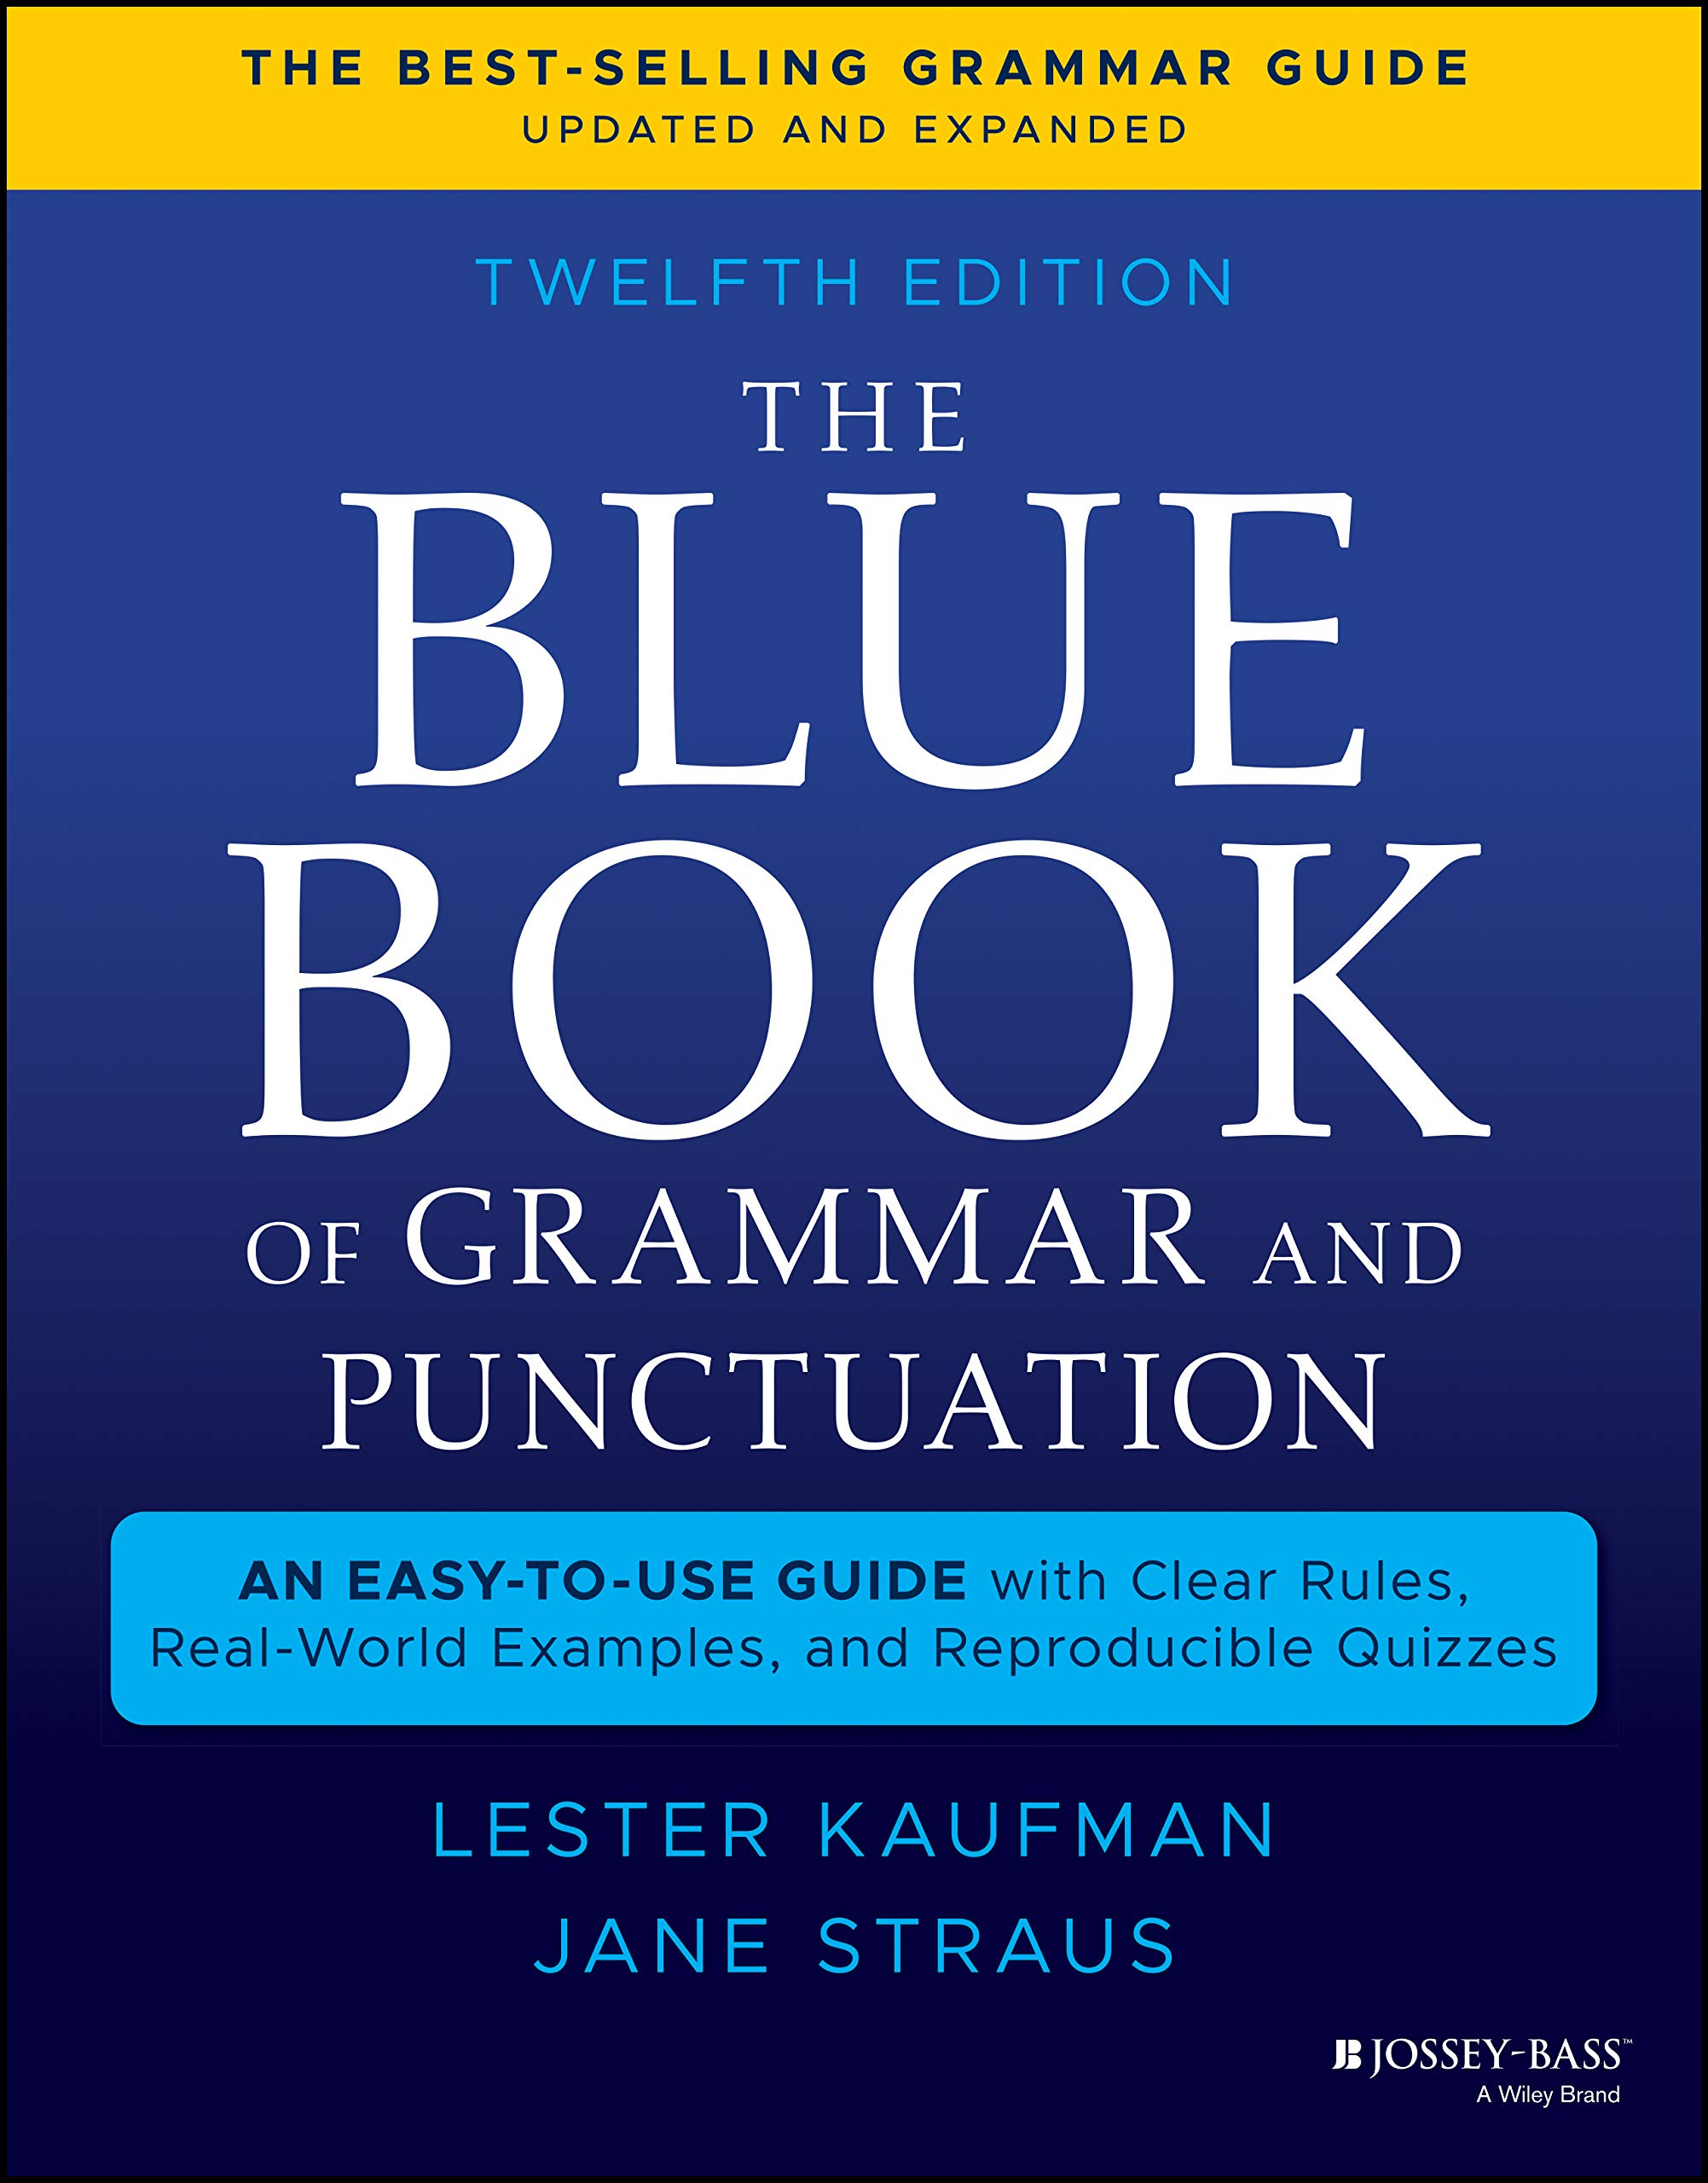 Download The Blue Book of Grammar and Punctuation PDF or Ebook ePub For Free with Find Popular Books